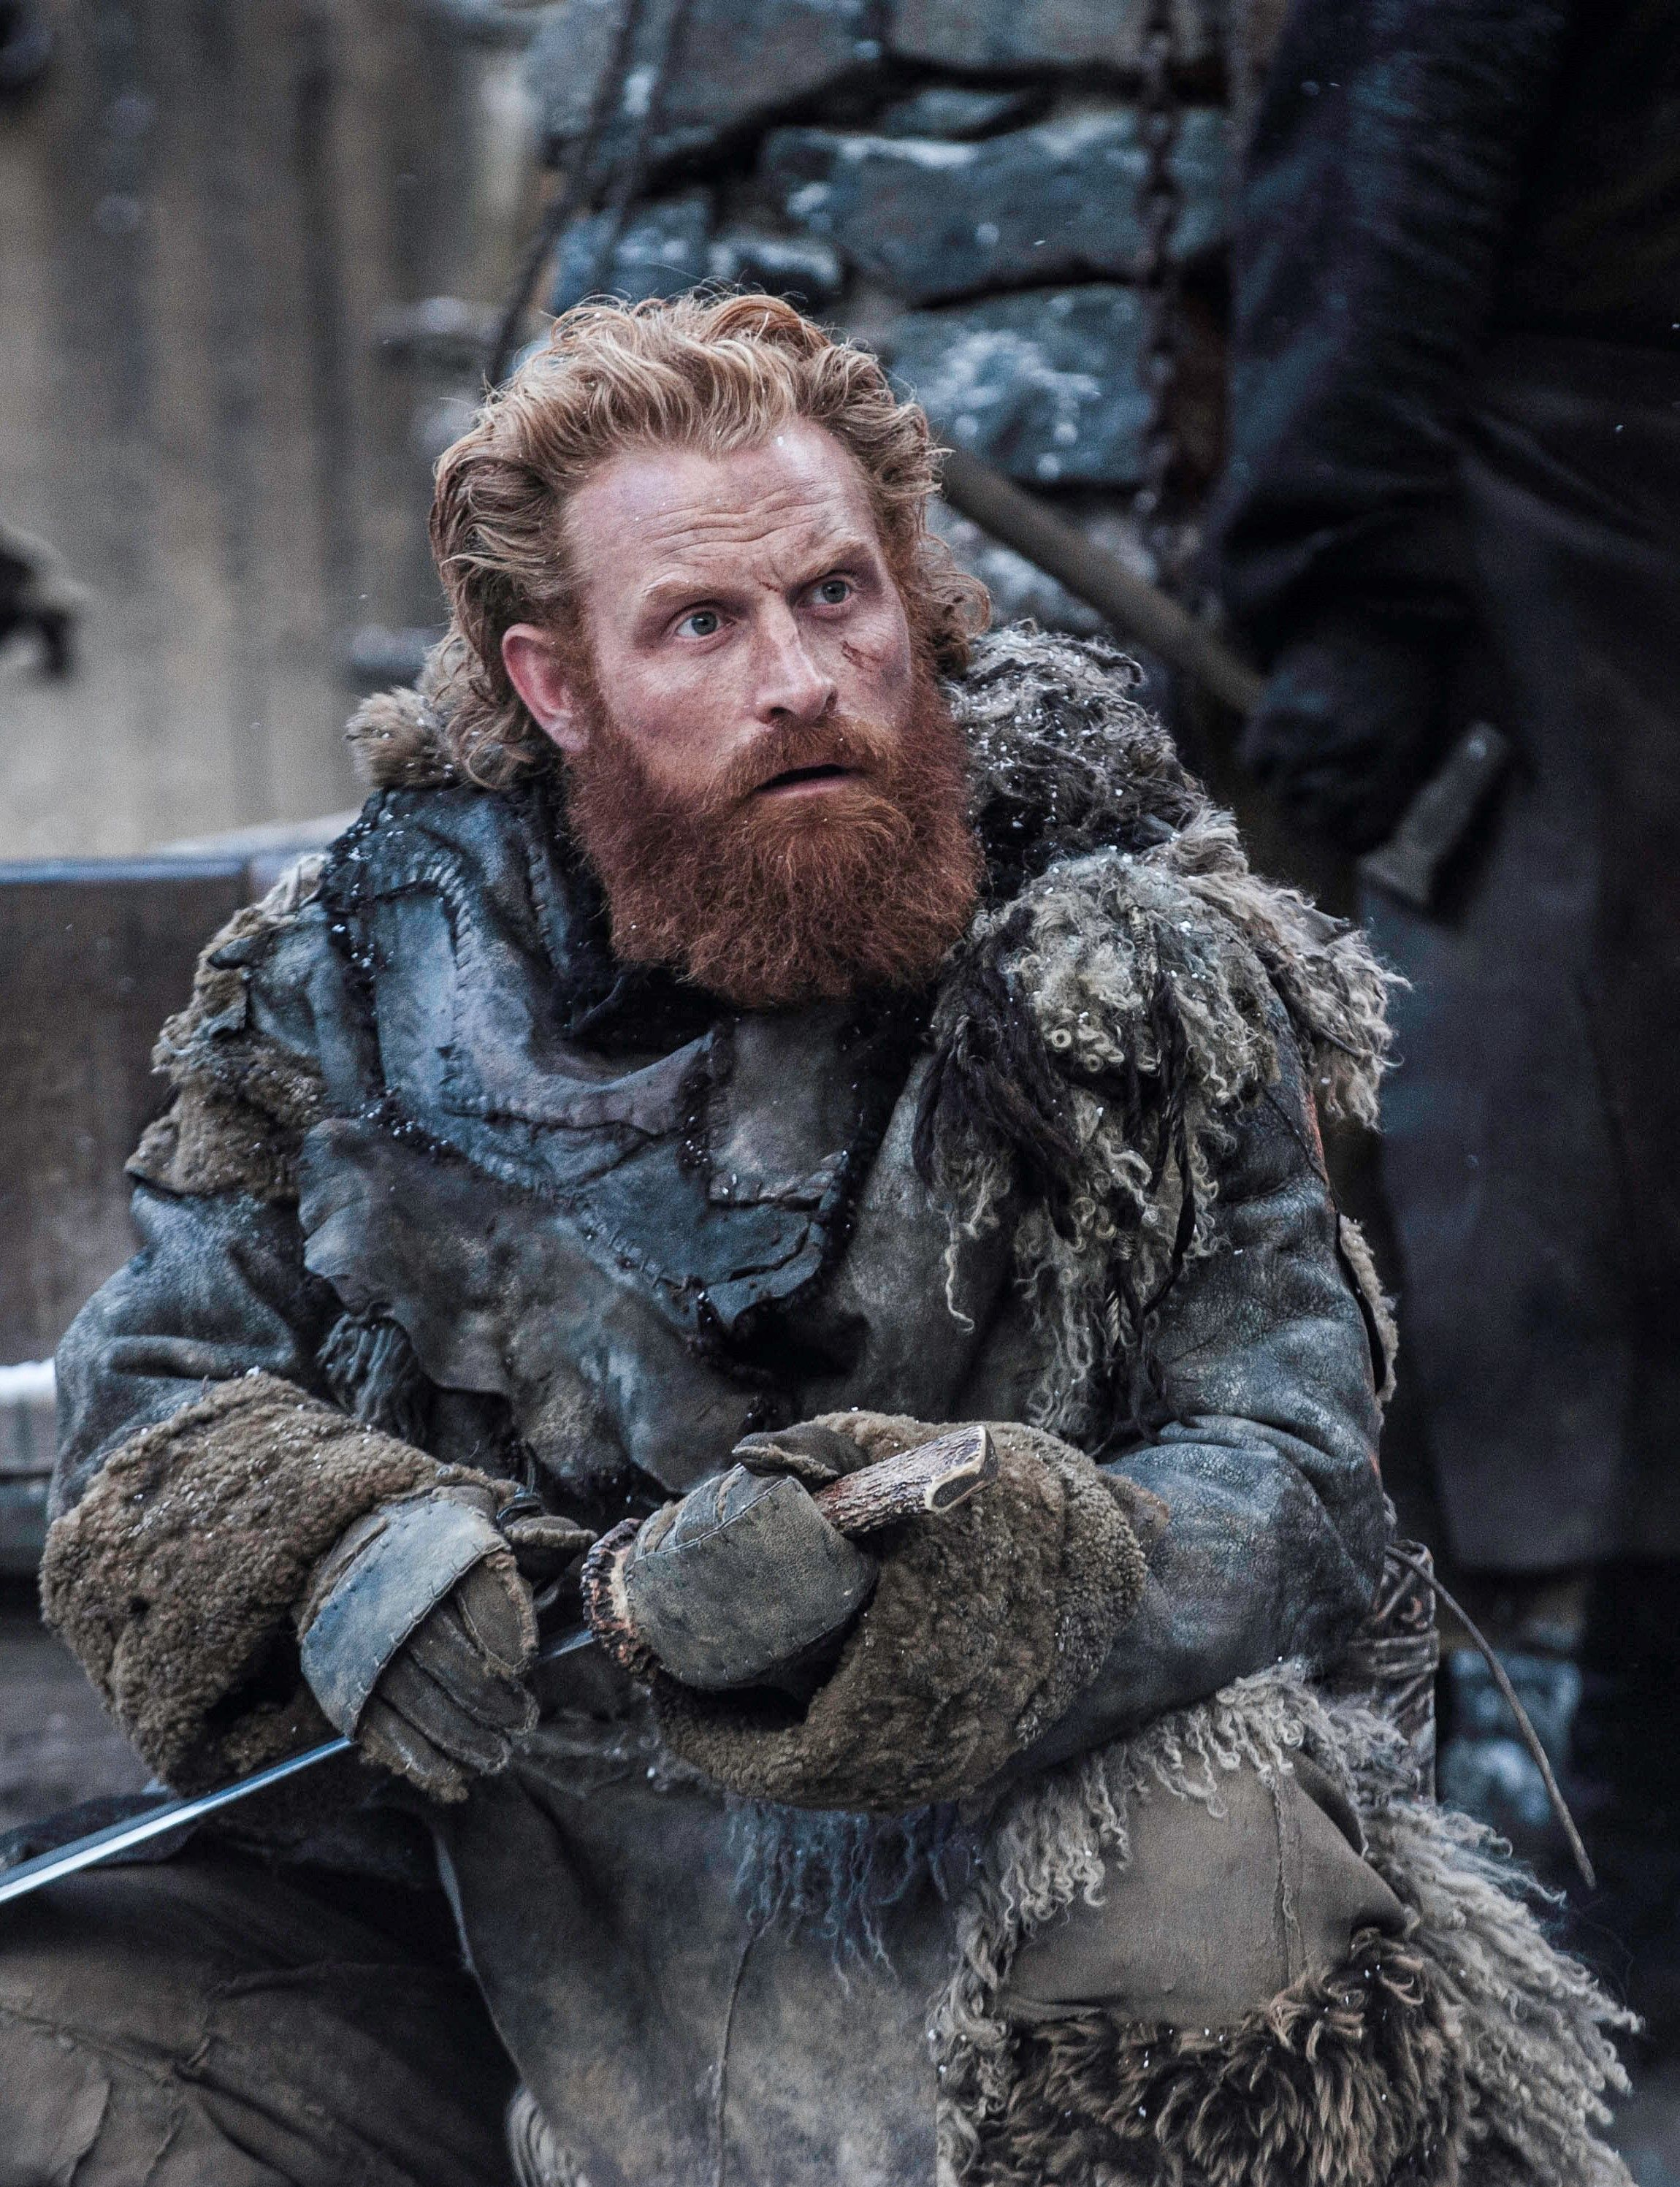 Game Of Thrones 5 Predictions For The Broken Man Tormund And Brienne Watchers On The Wall A Song Of Ice And Fire